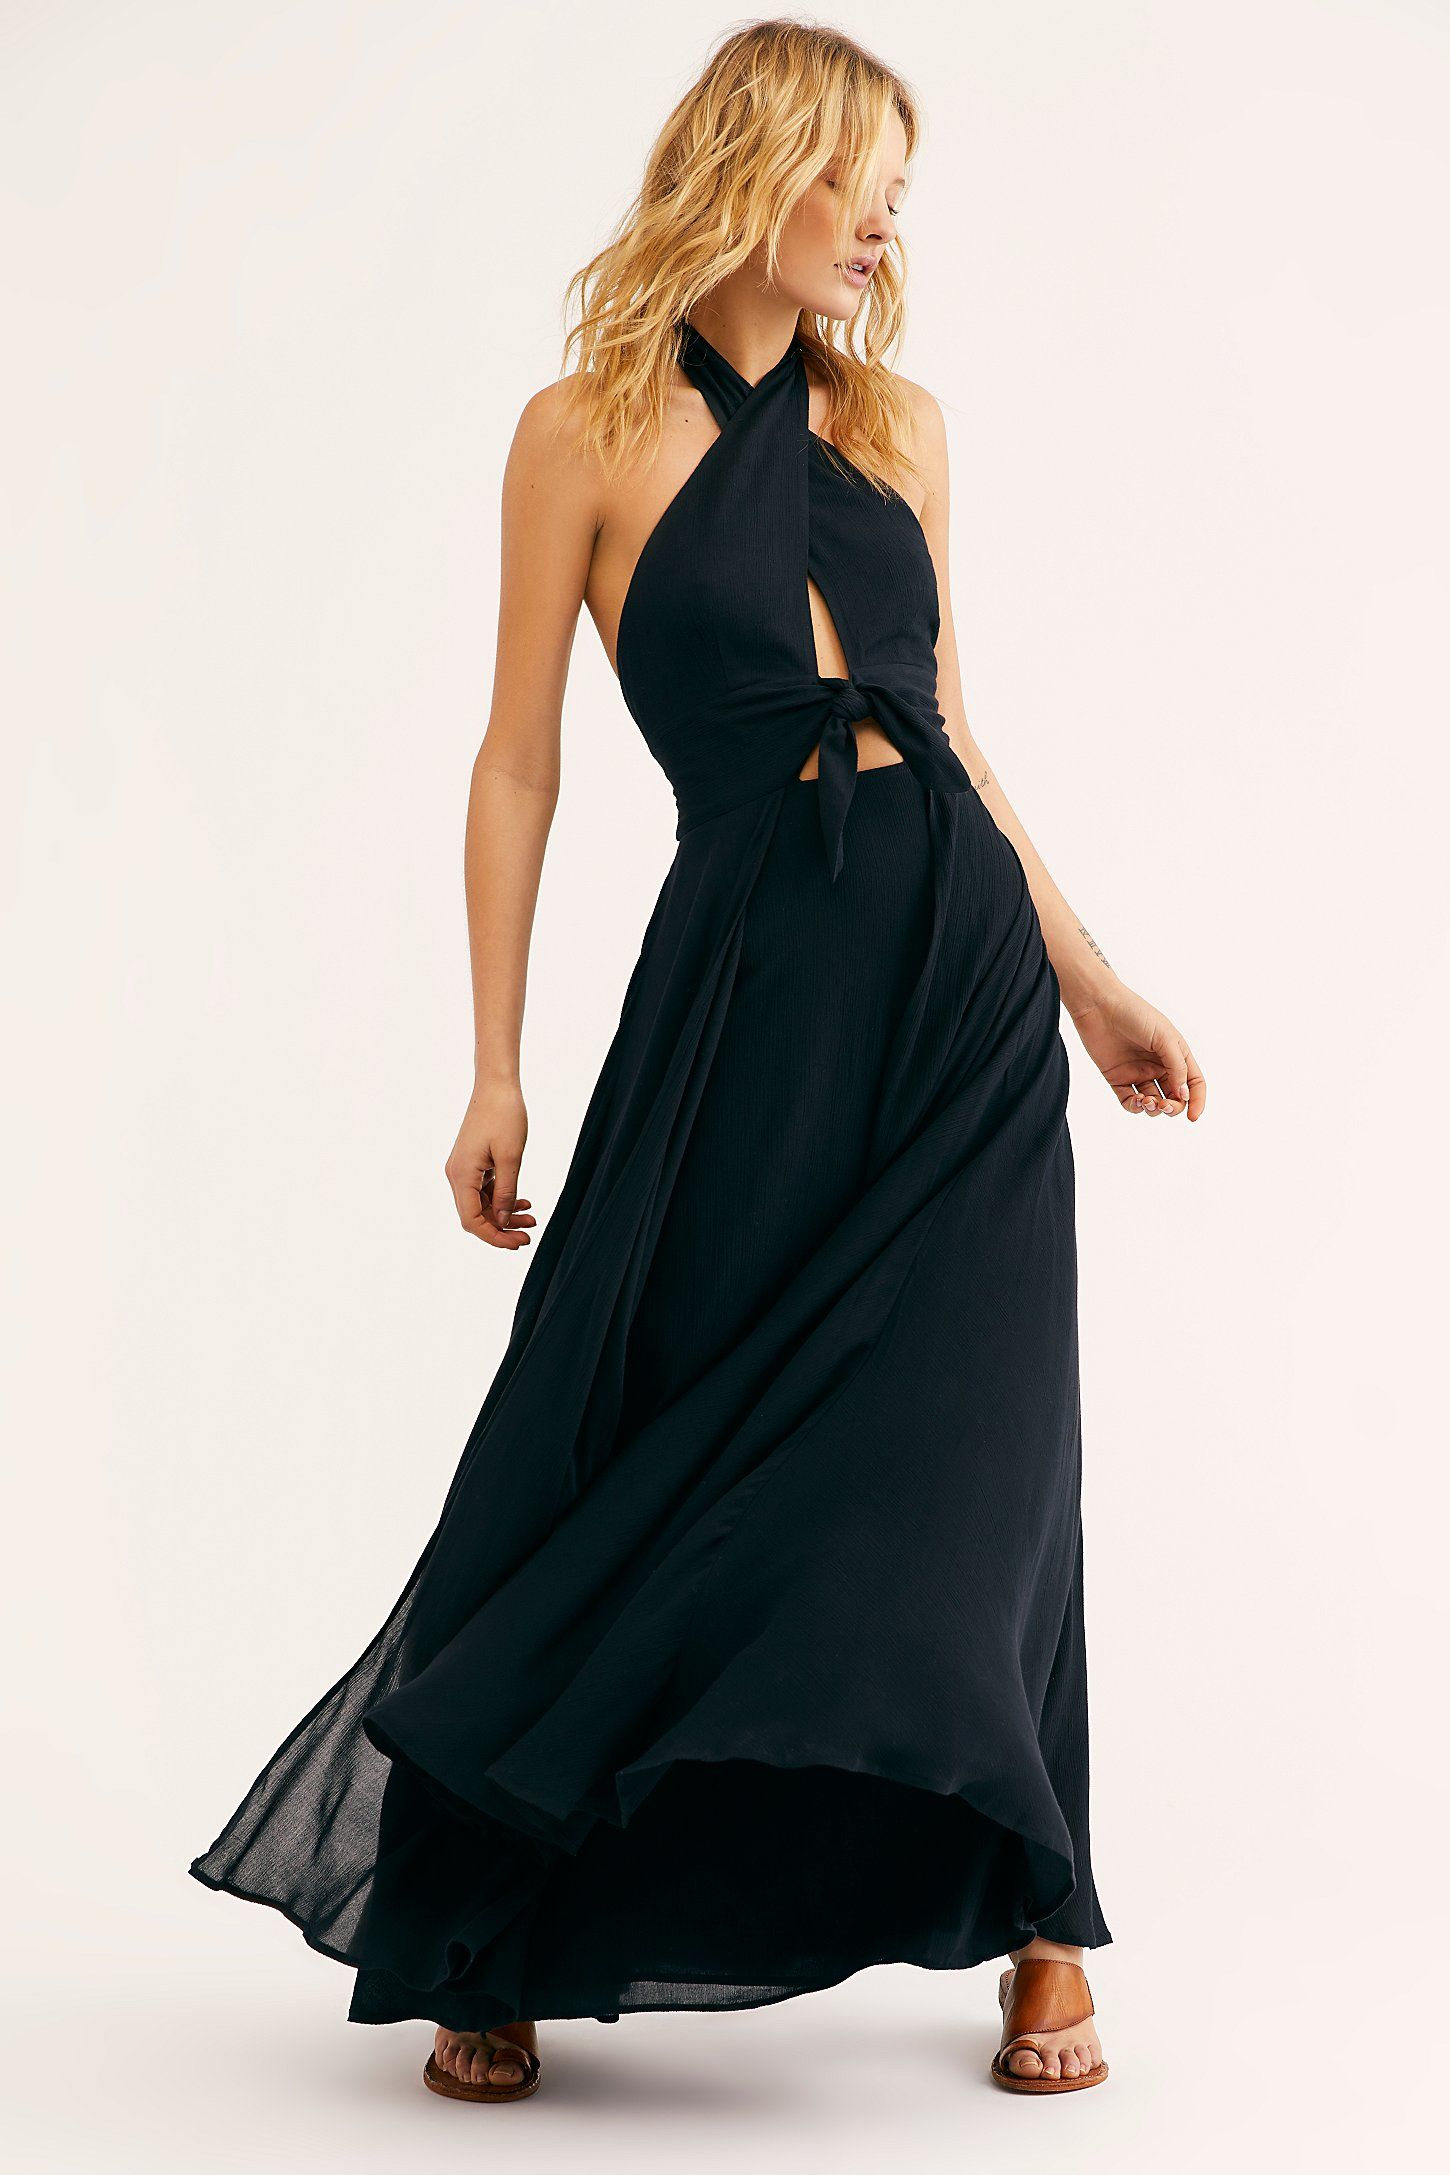 955c078329 My Long Time Love Maxi Dress in 2019 | WHAT IS NEW: in stores and ...